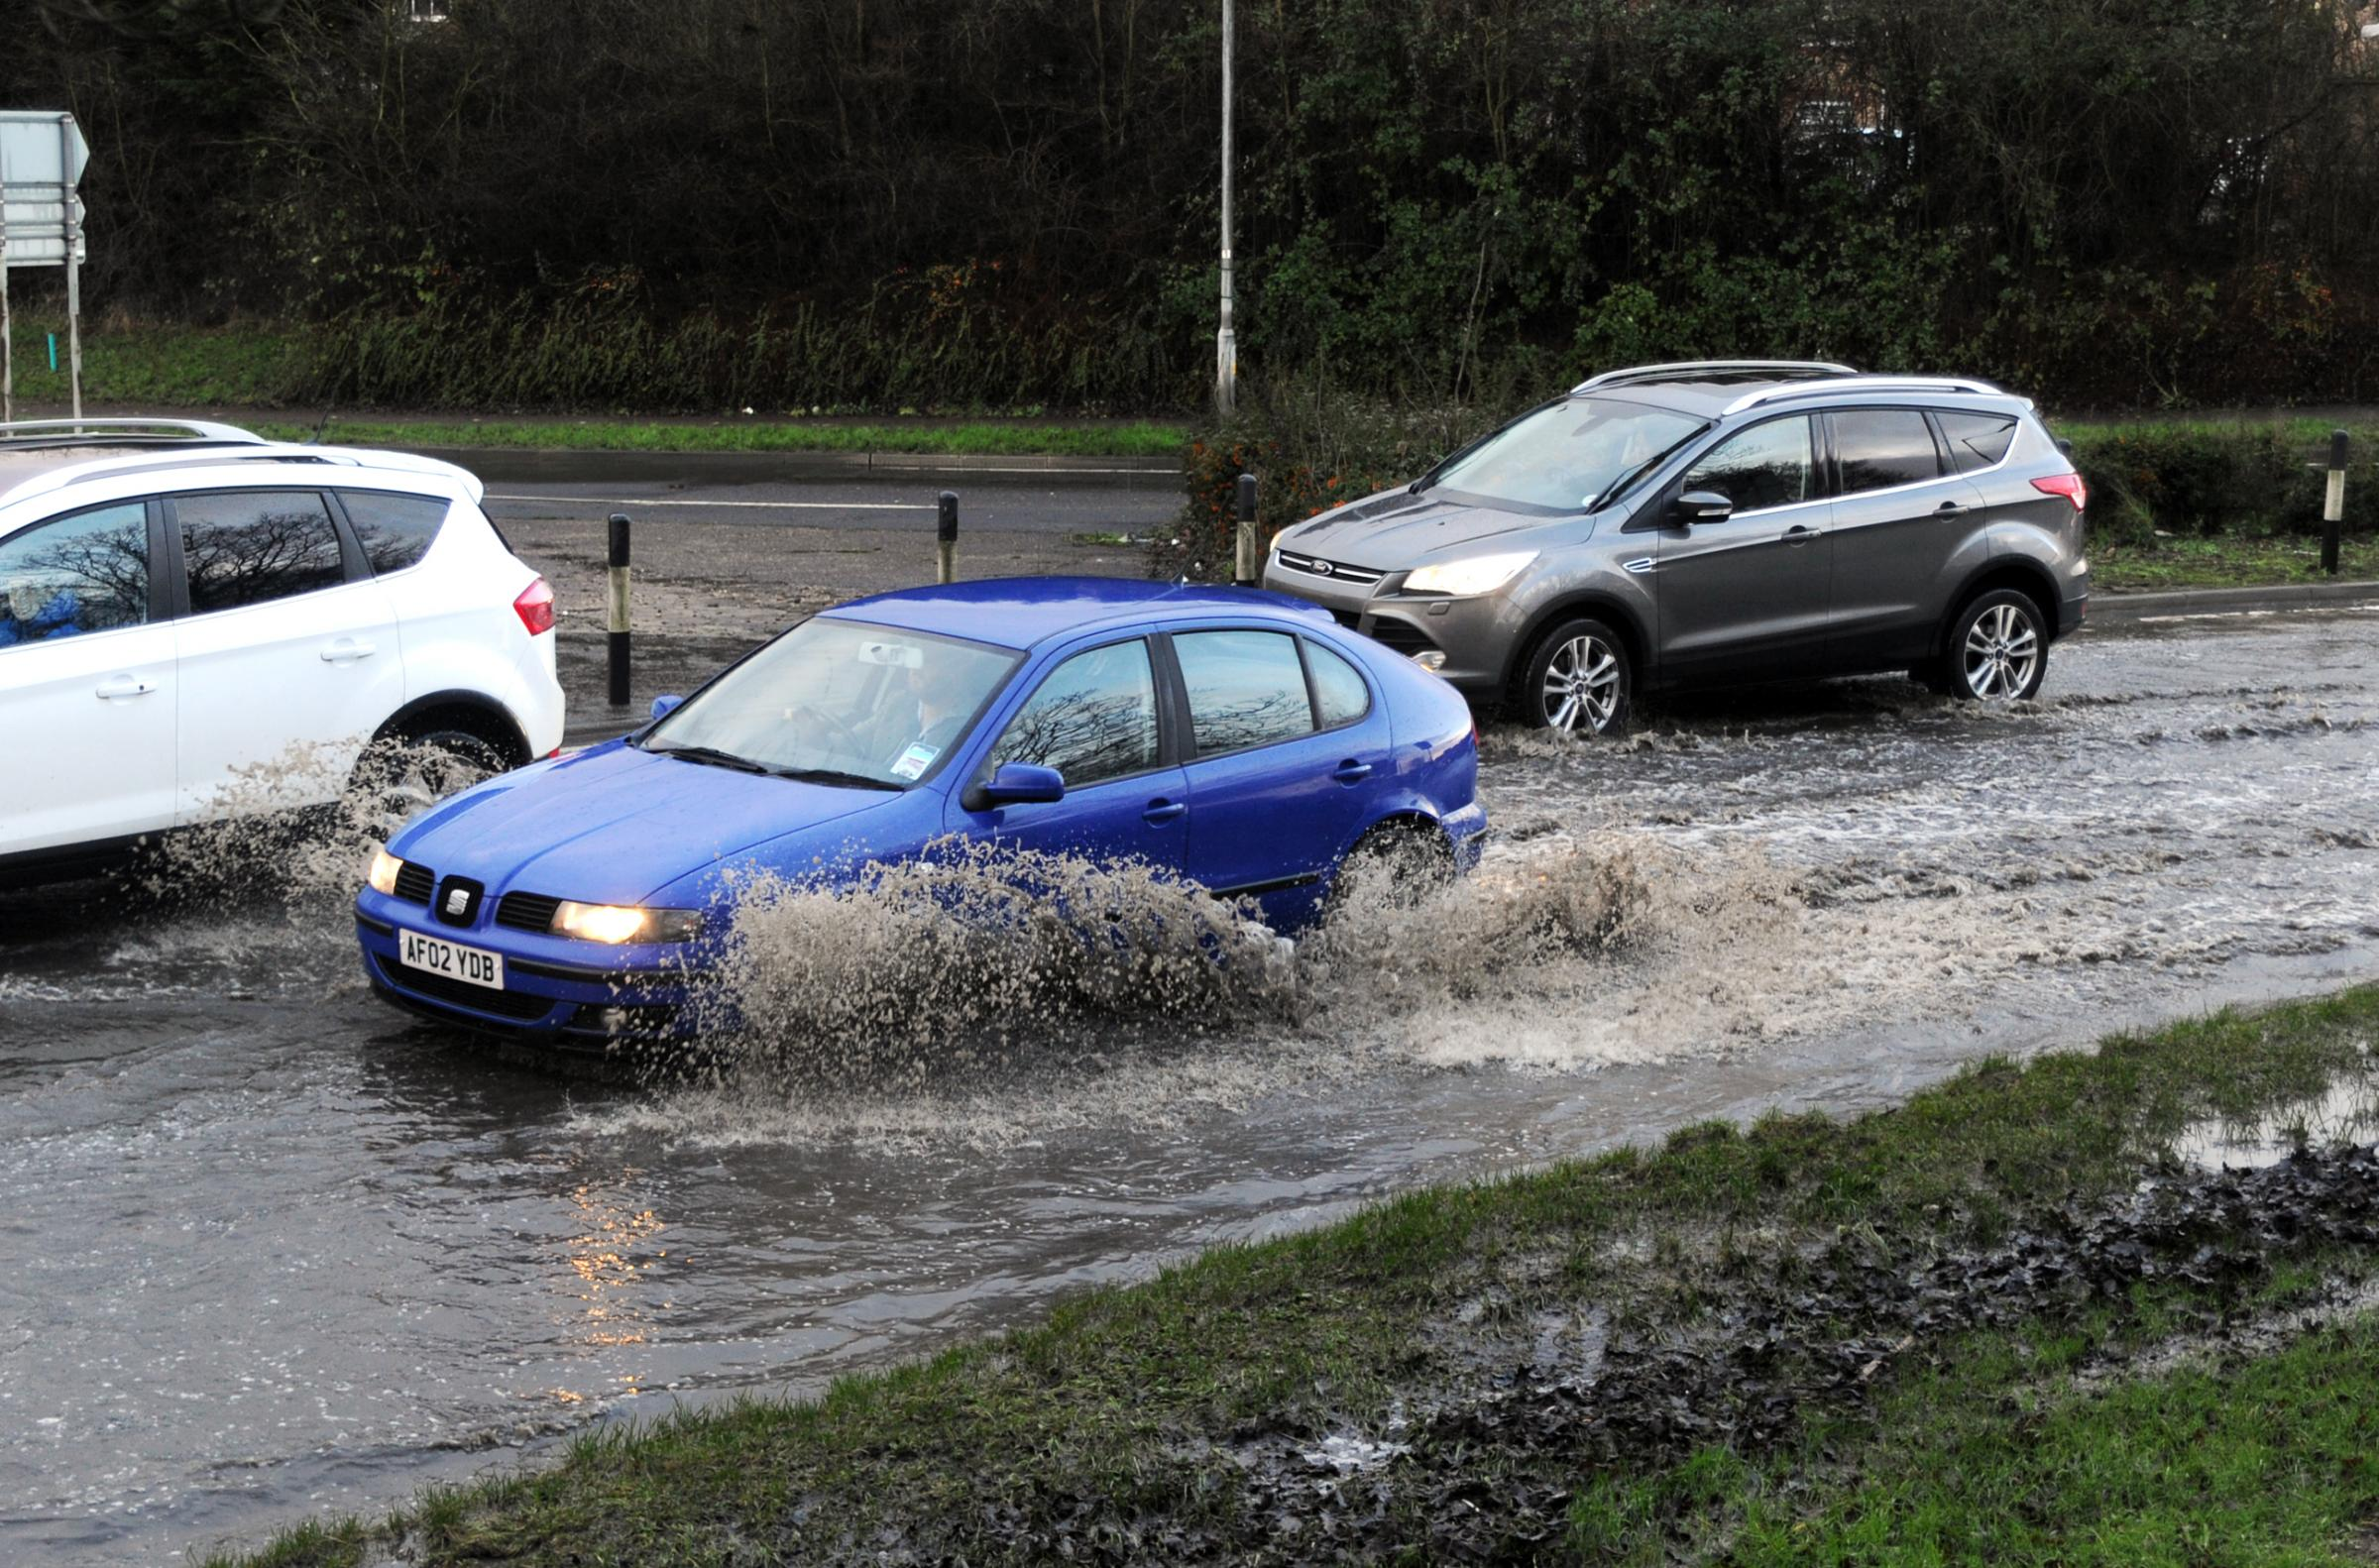 Floodwater causes havoc across south Bucks